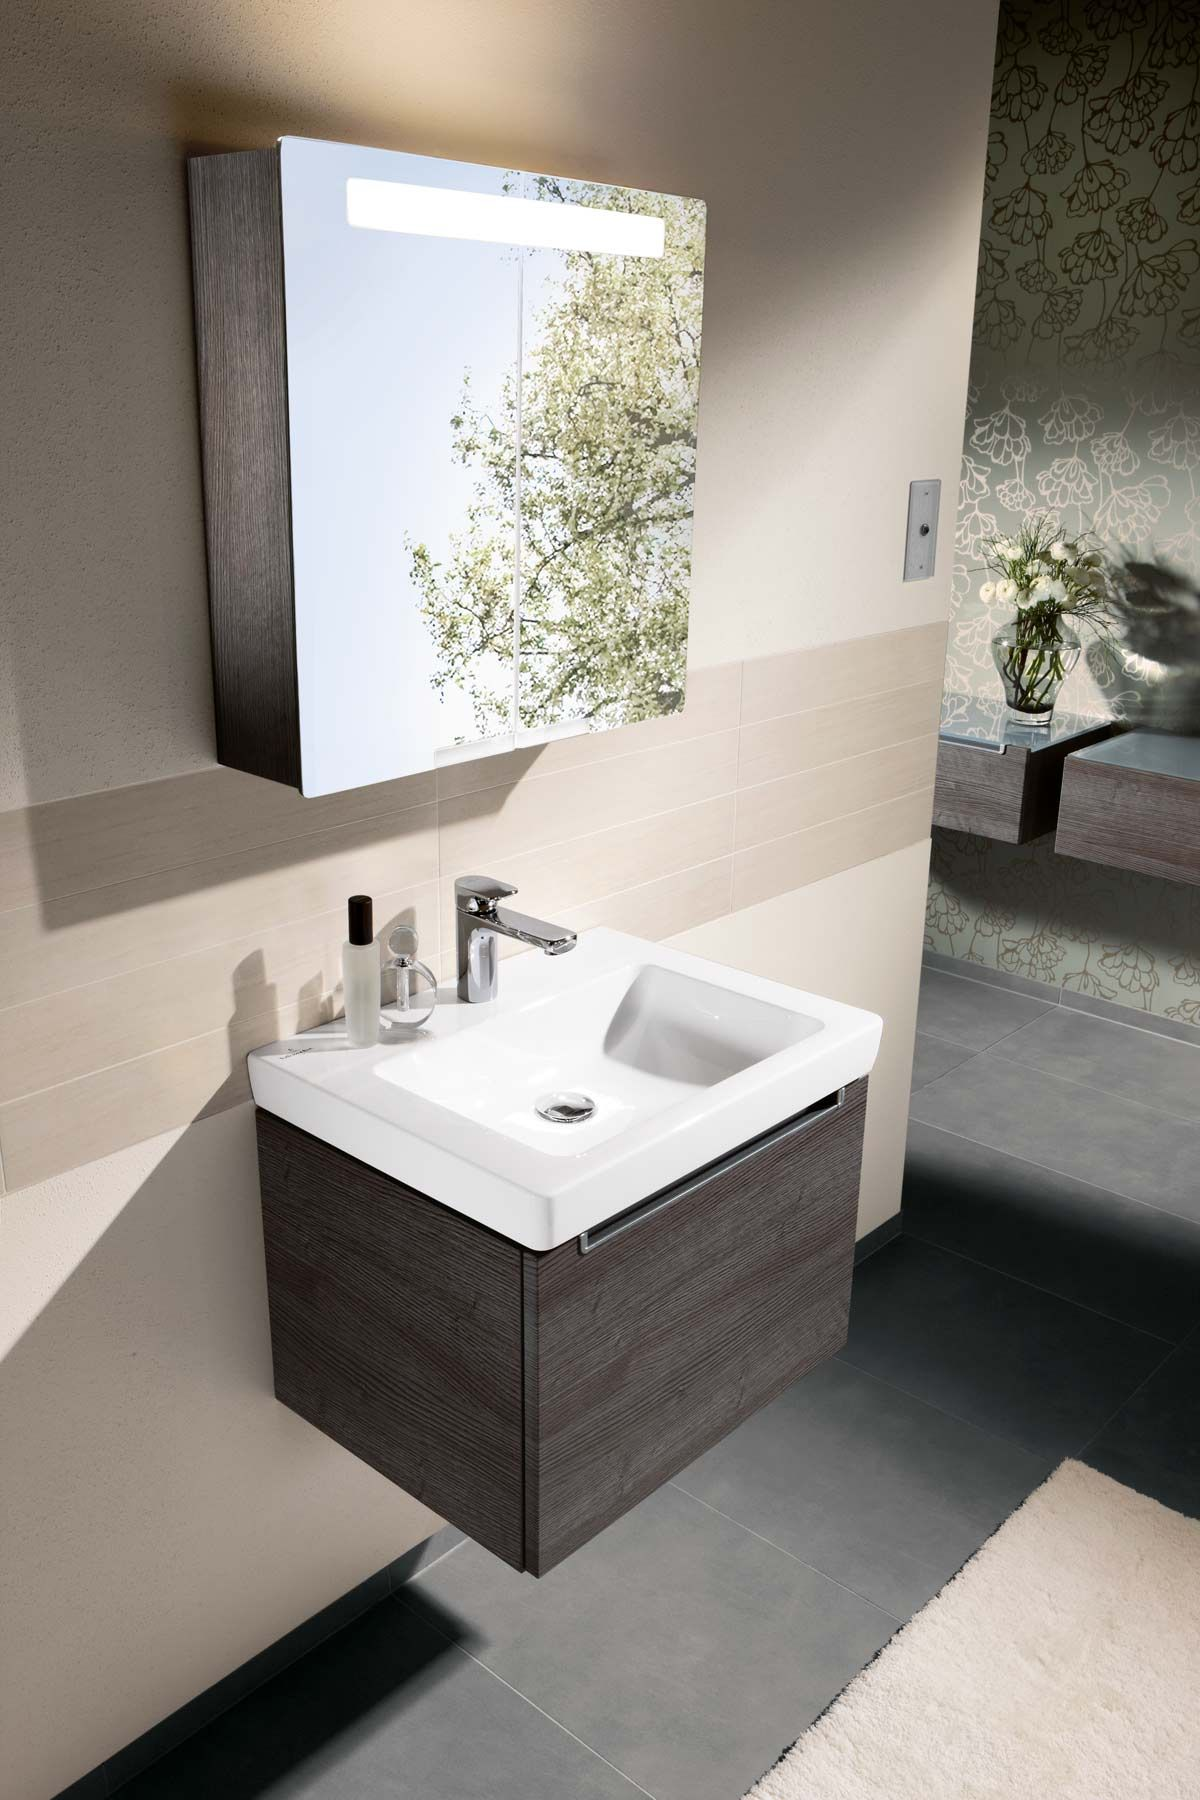 villeroy boch subway 20 furniture oak graphite - Villeroy And Boch Bathroom Cabinets